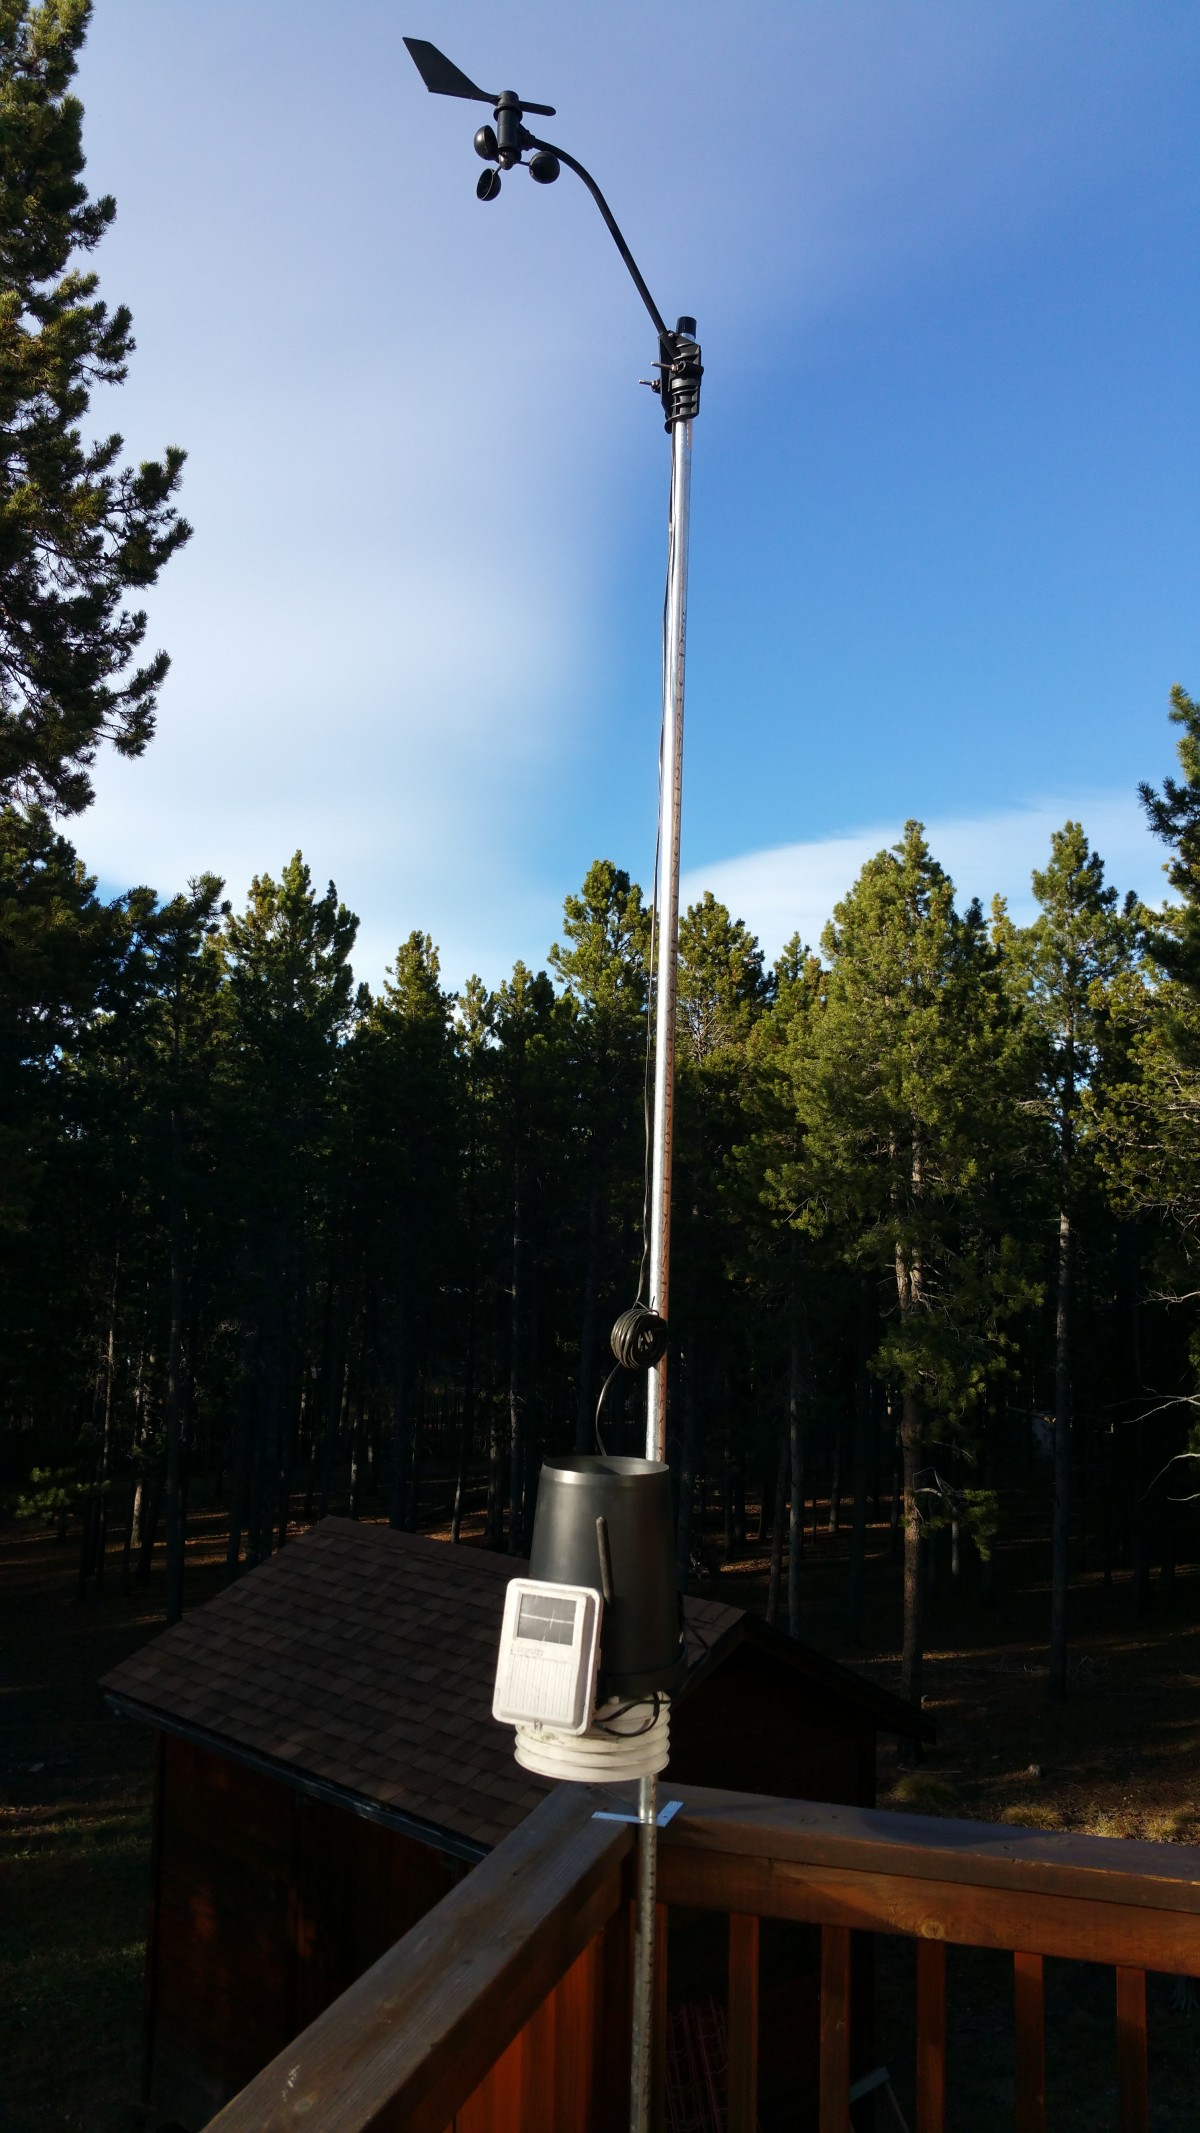 Weather station installed